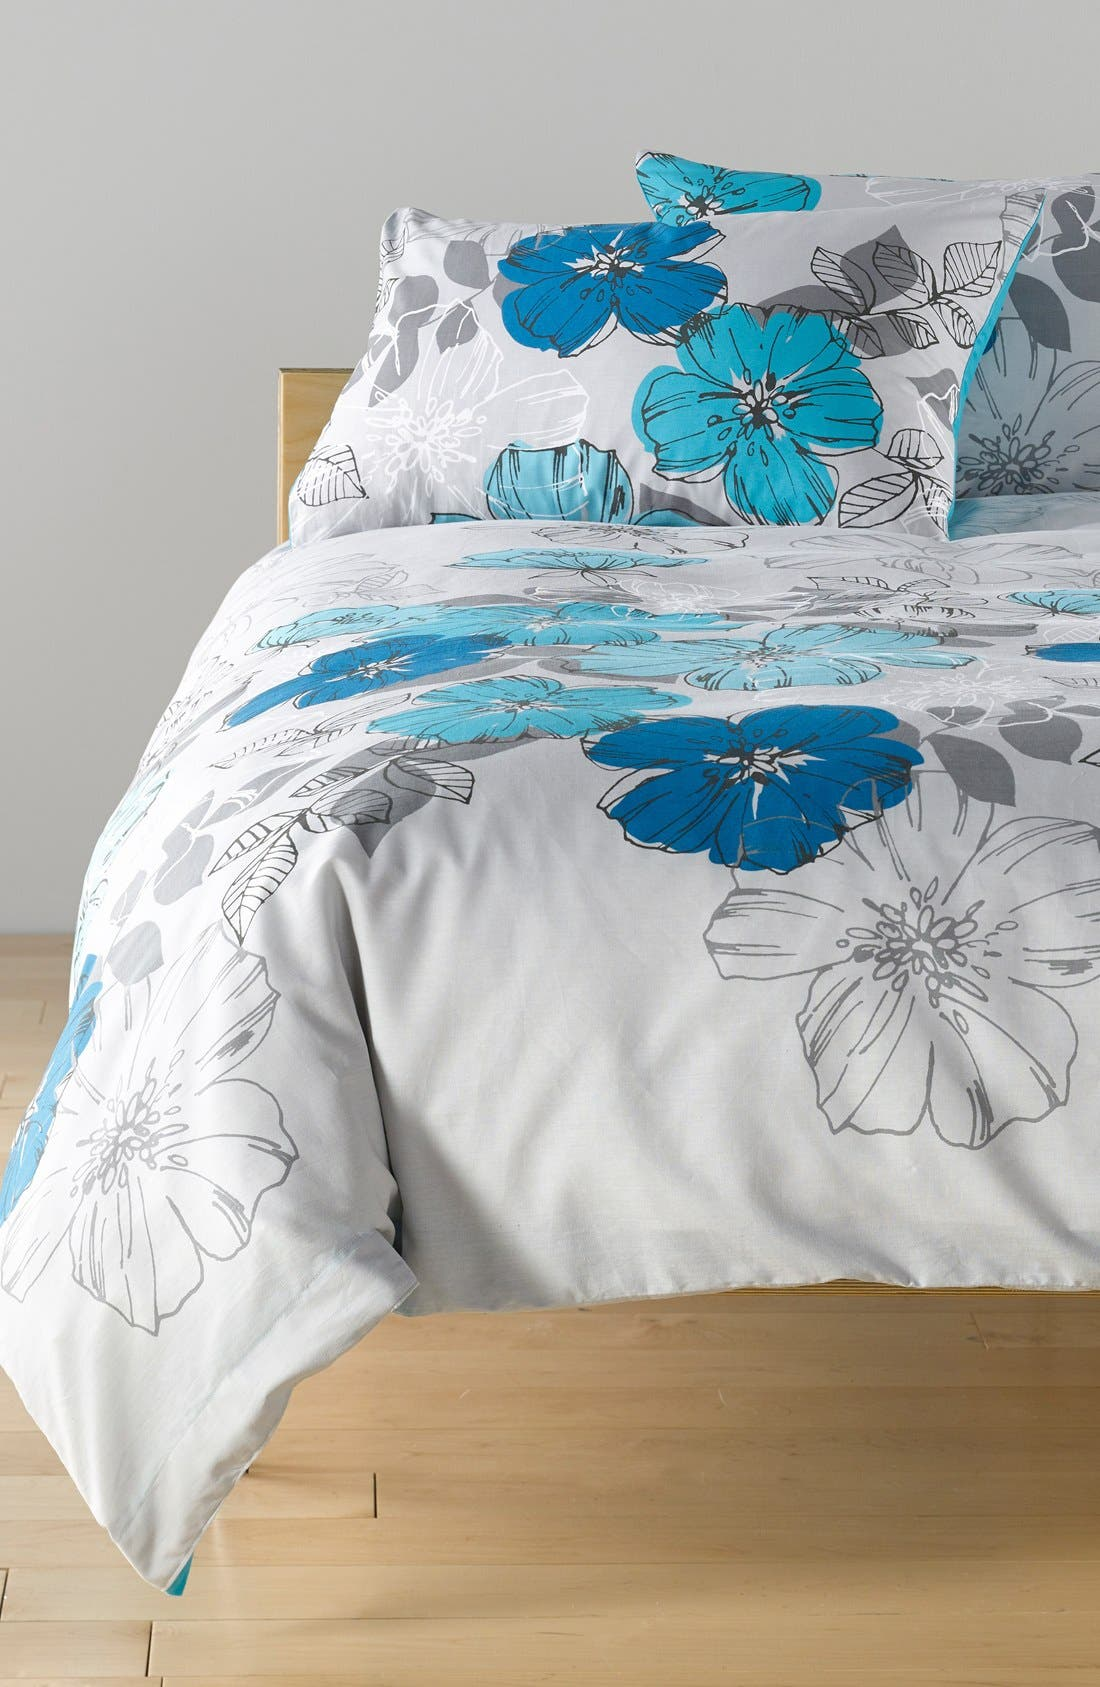 Alternate Image 1 Selected - KAS Designs 'Clara' Duvet Cover Set